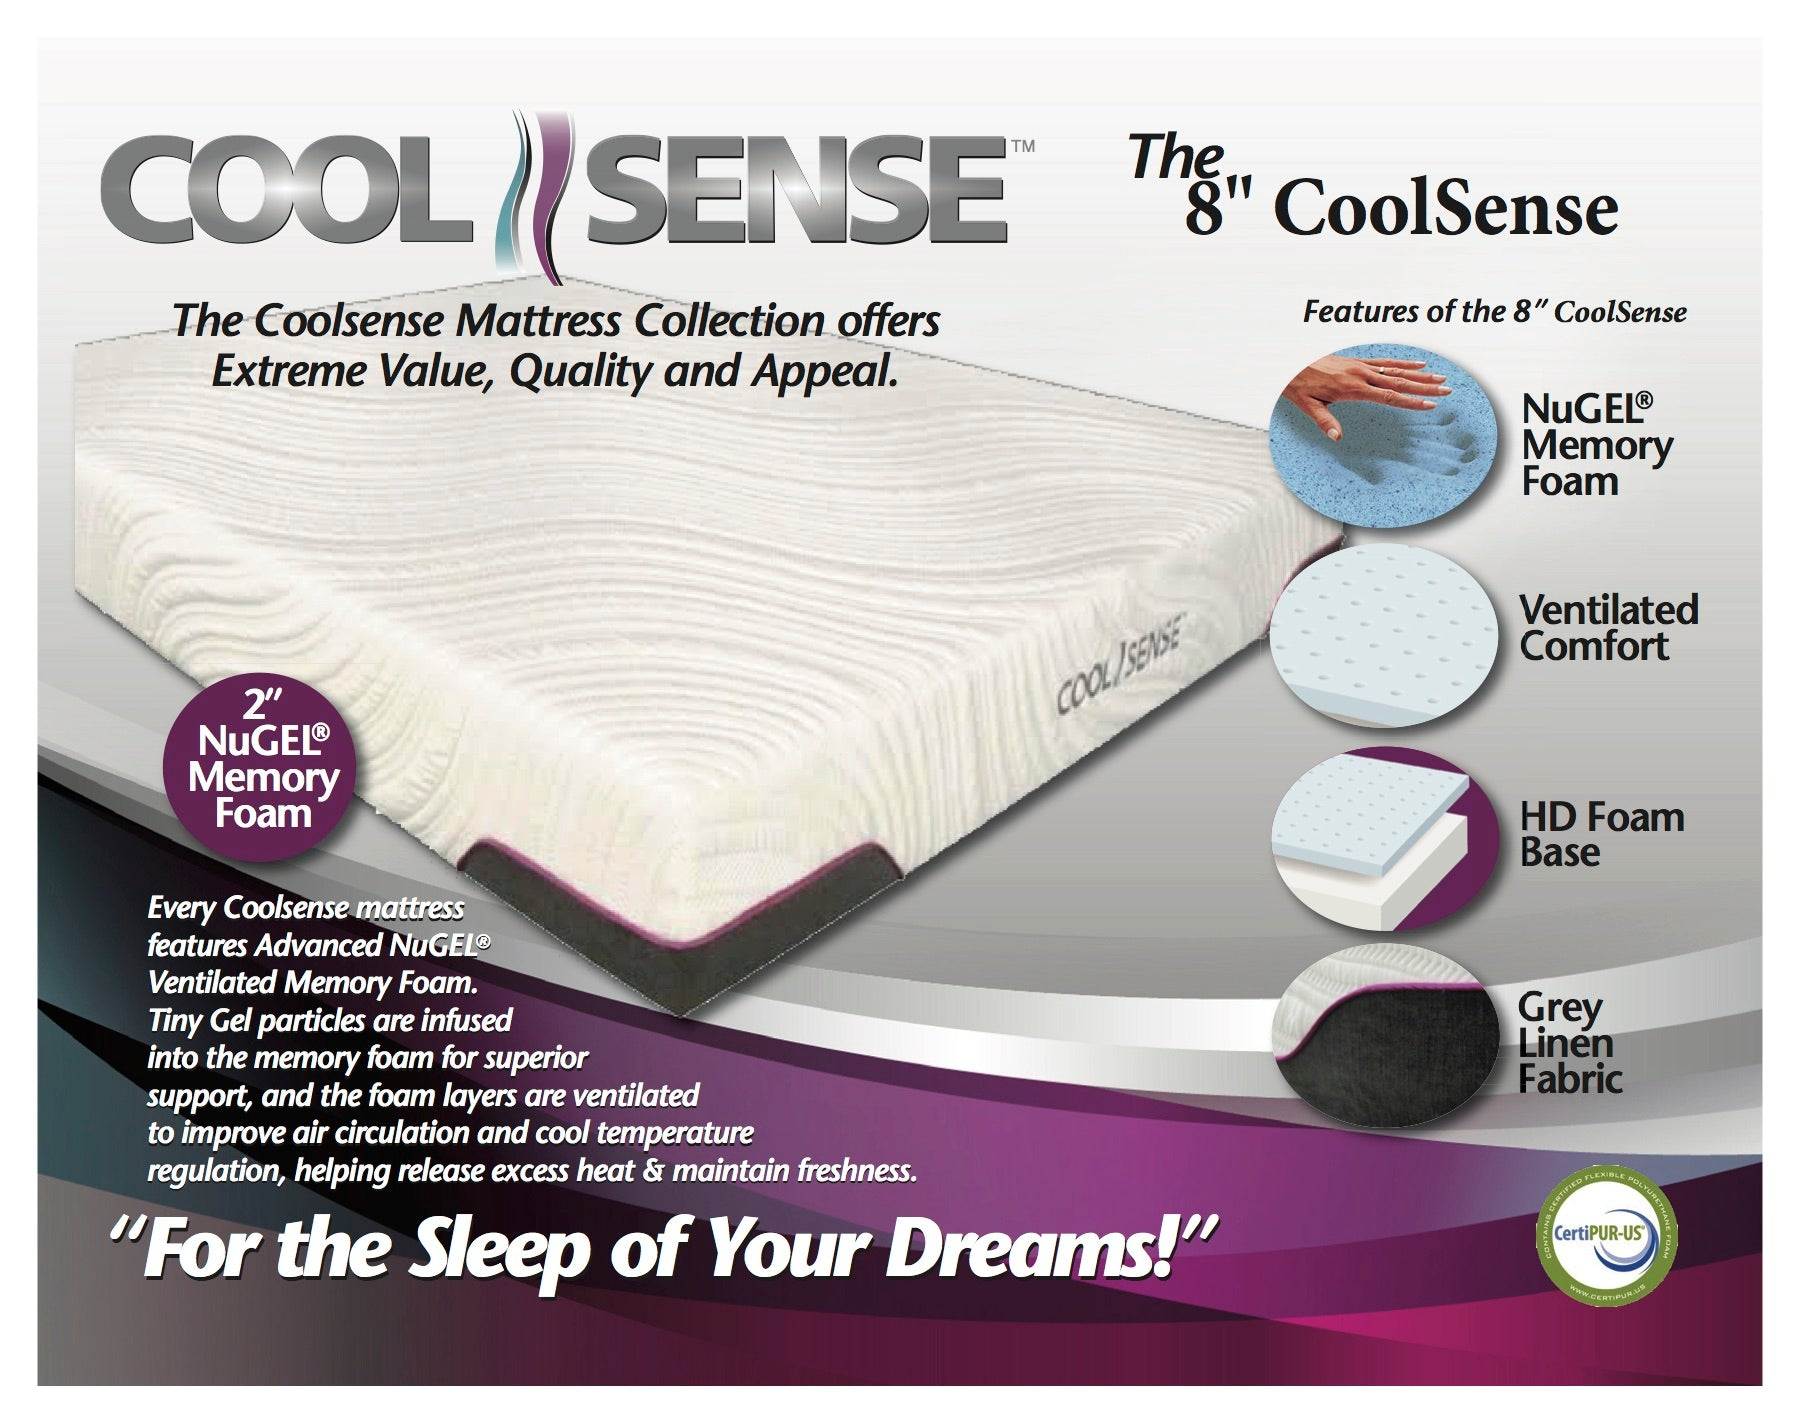 "The 8"" CoolSense"